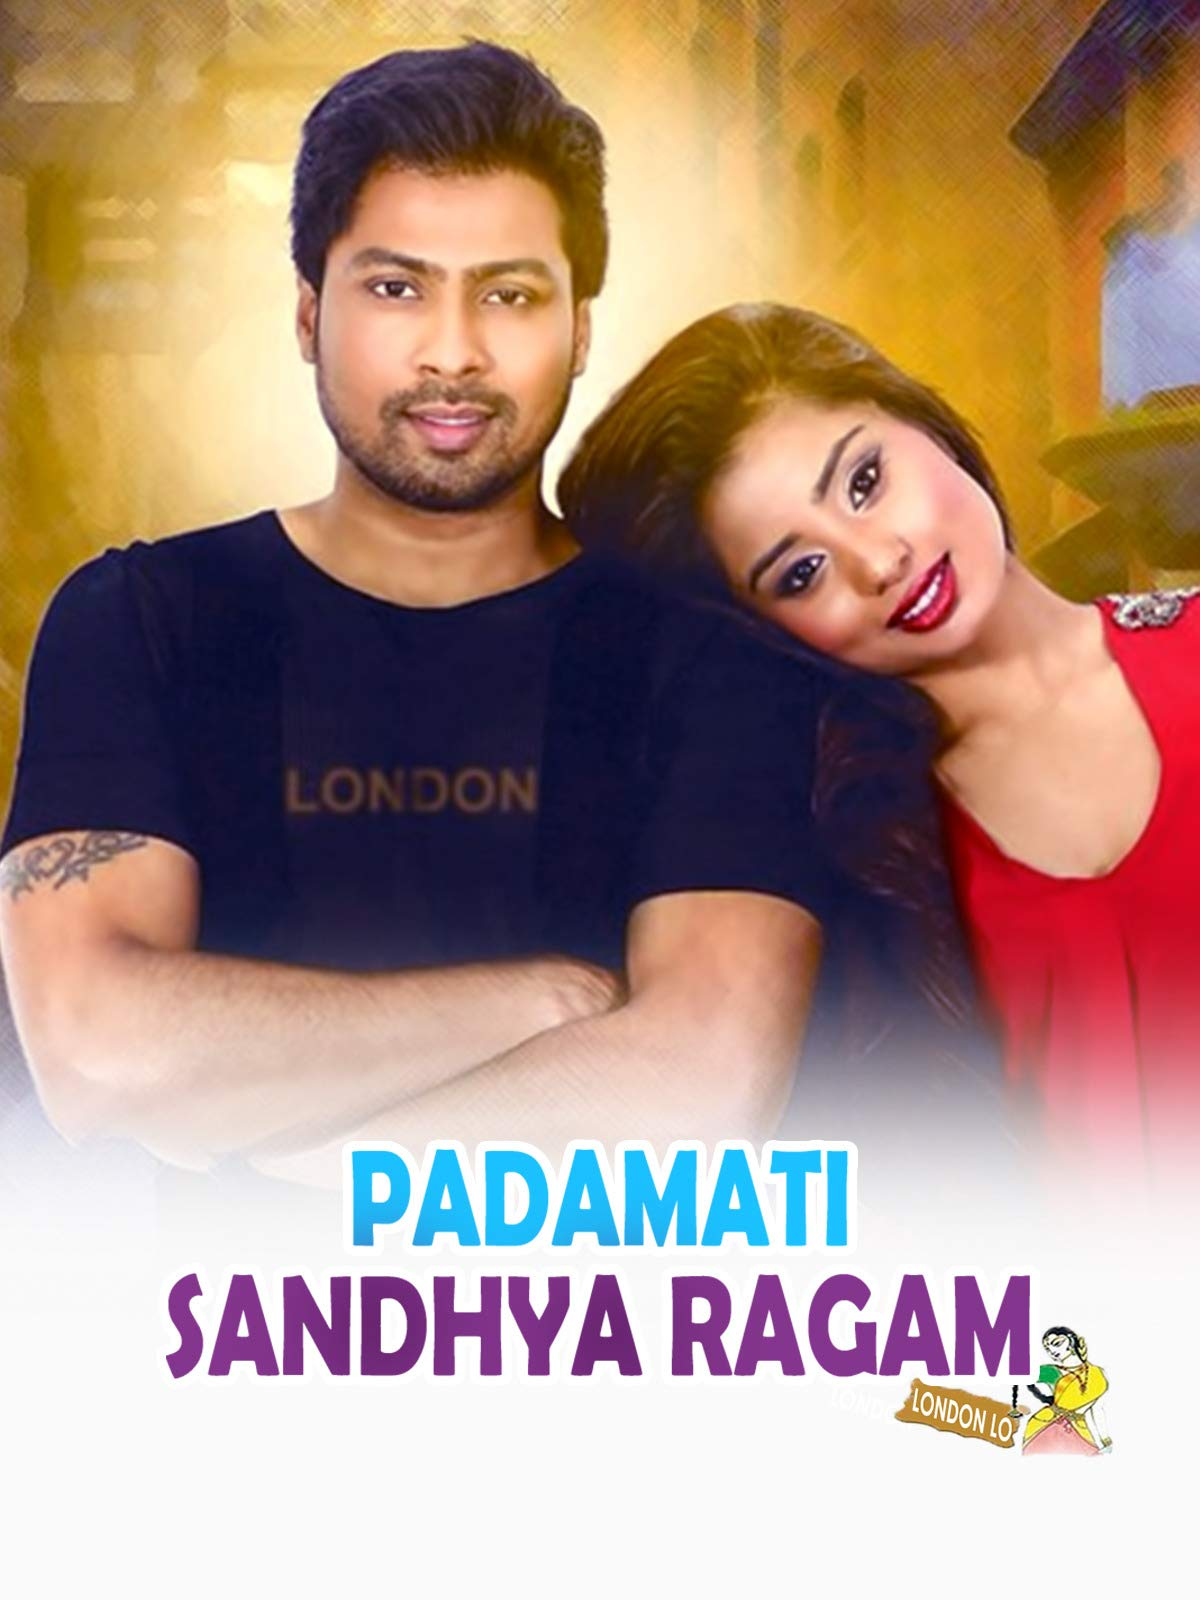 Padamati Sandhya Ragam London Lo on Amazon Prime Video UK